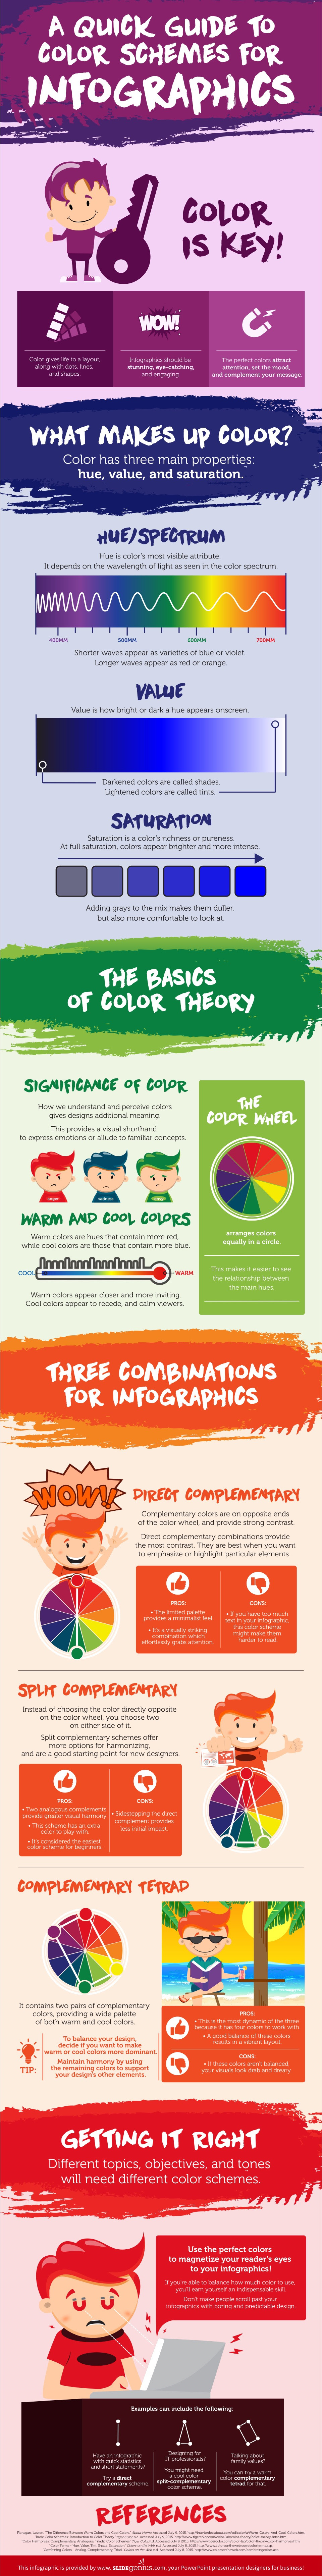 [Infographic] A Quick Guide To Color Schemes For Infographics